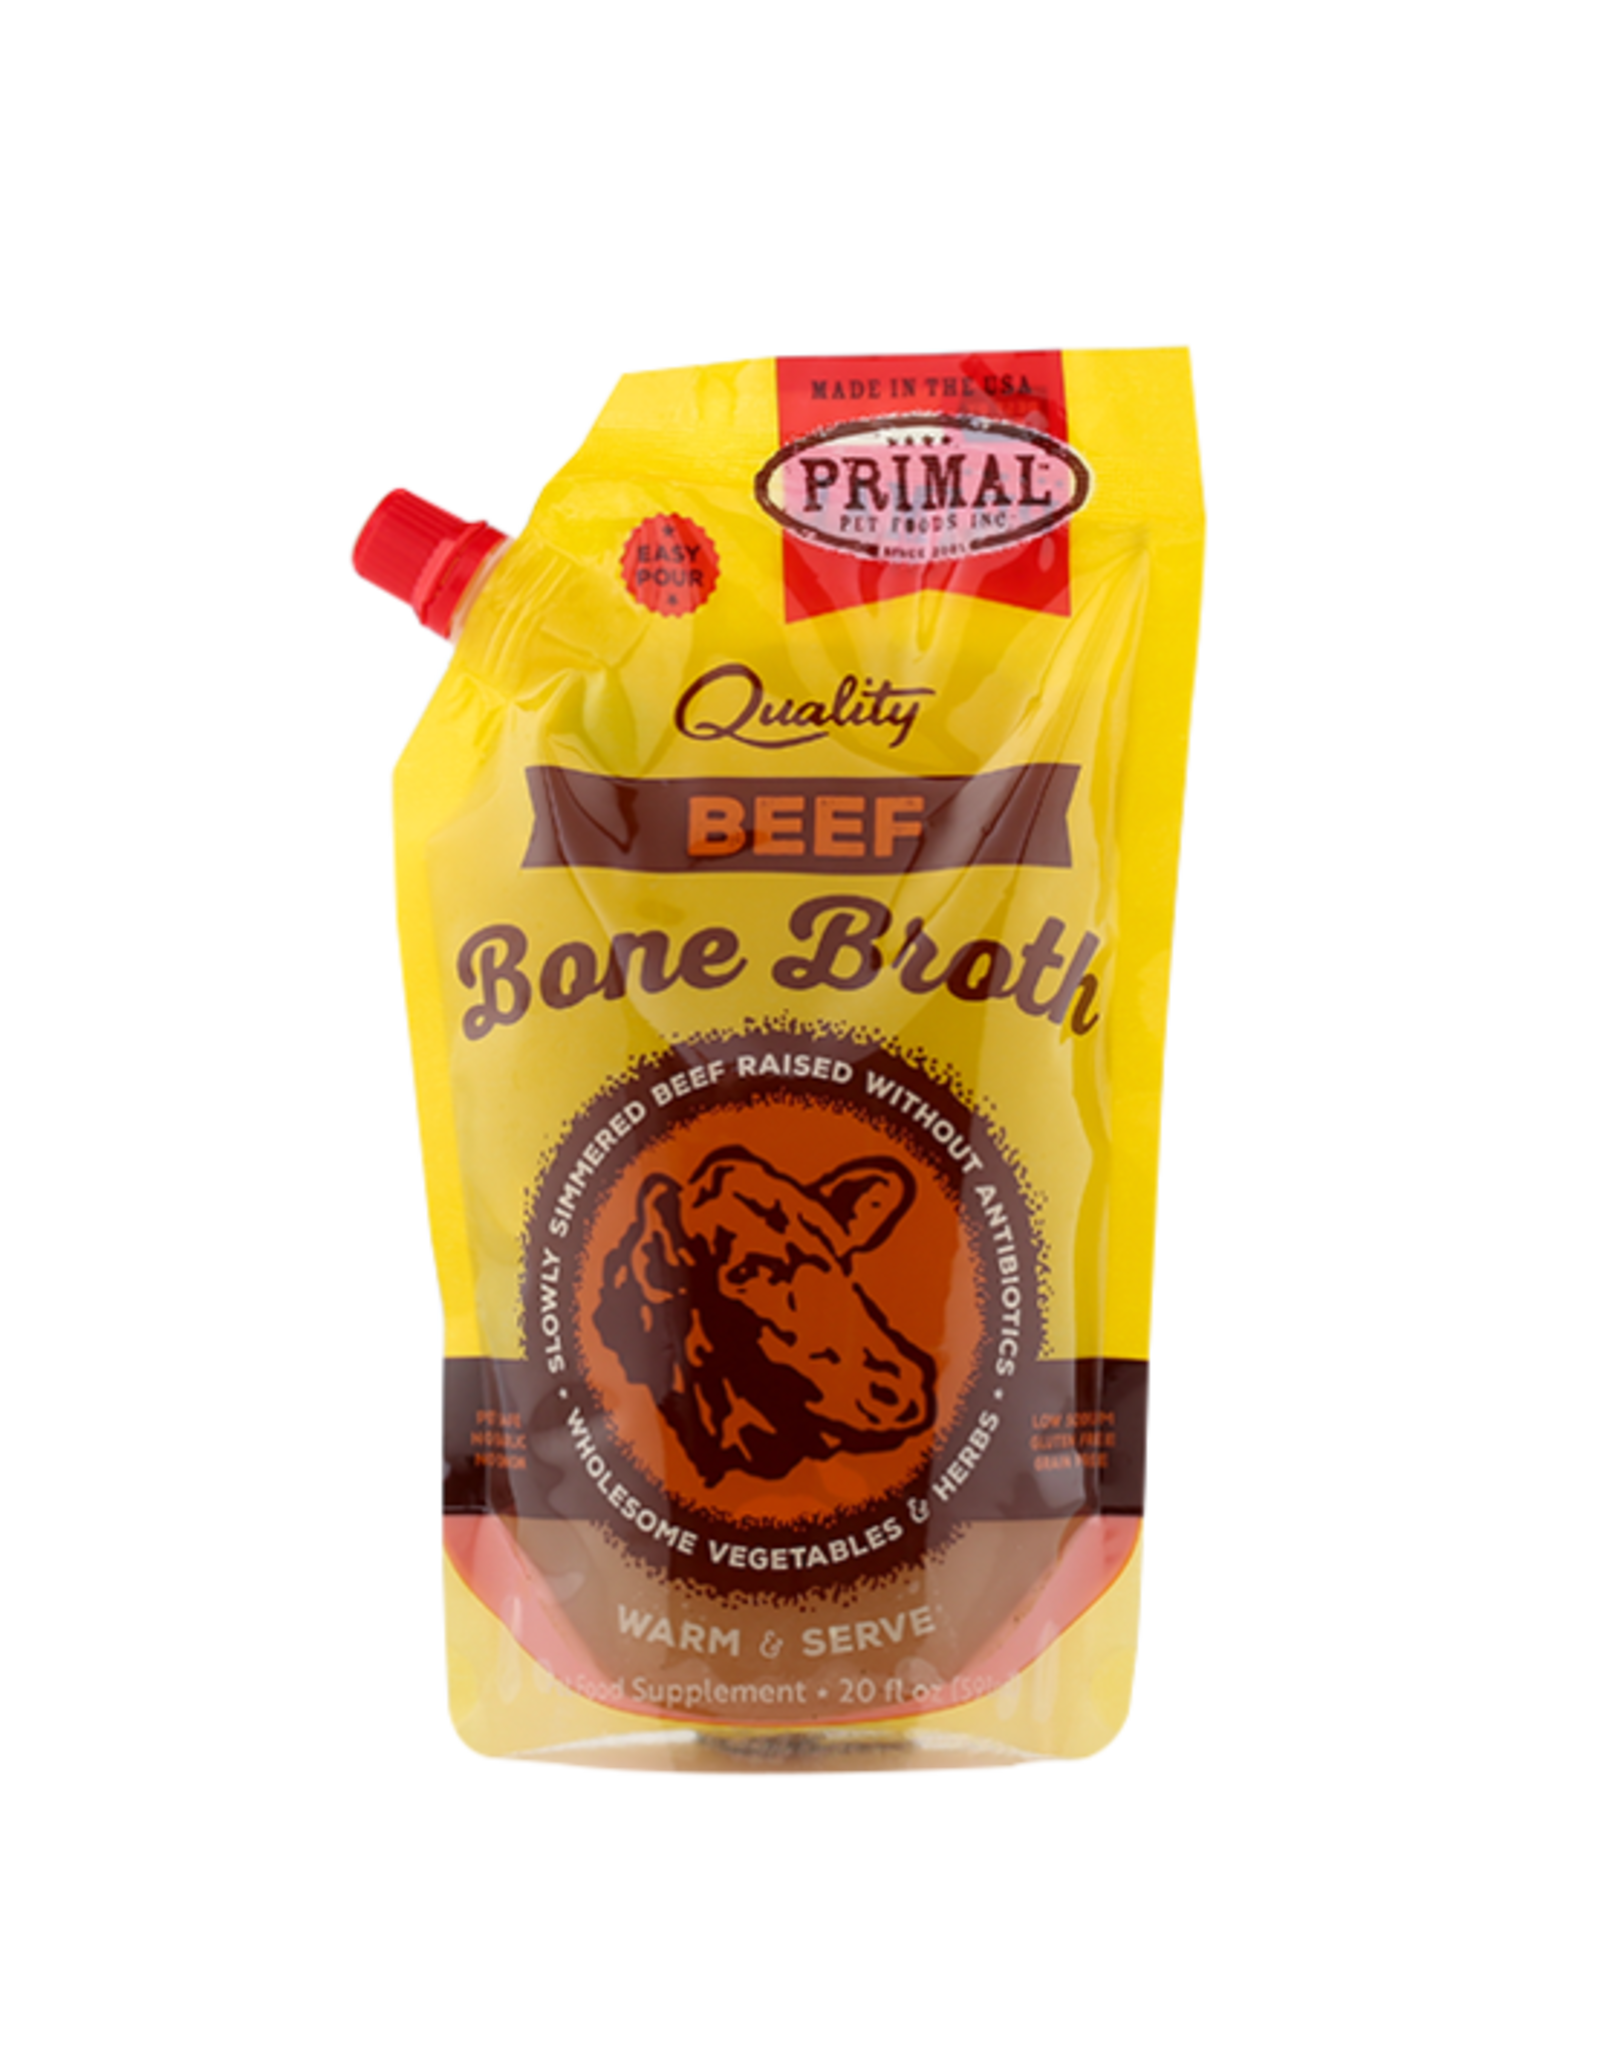 Primal Primal Bone Broth Beef